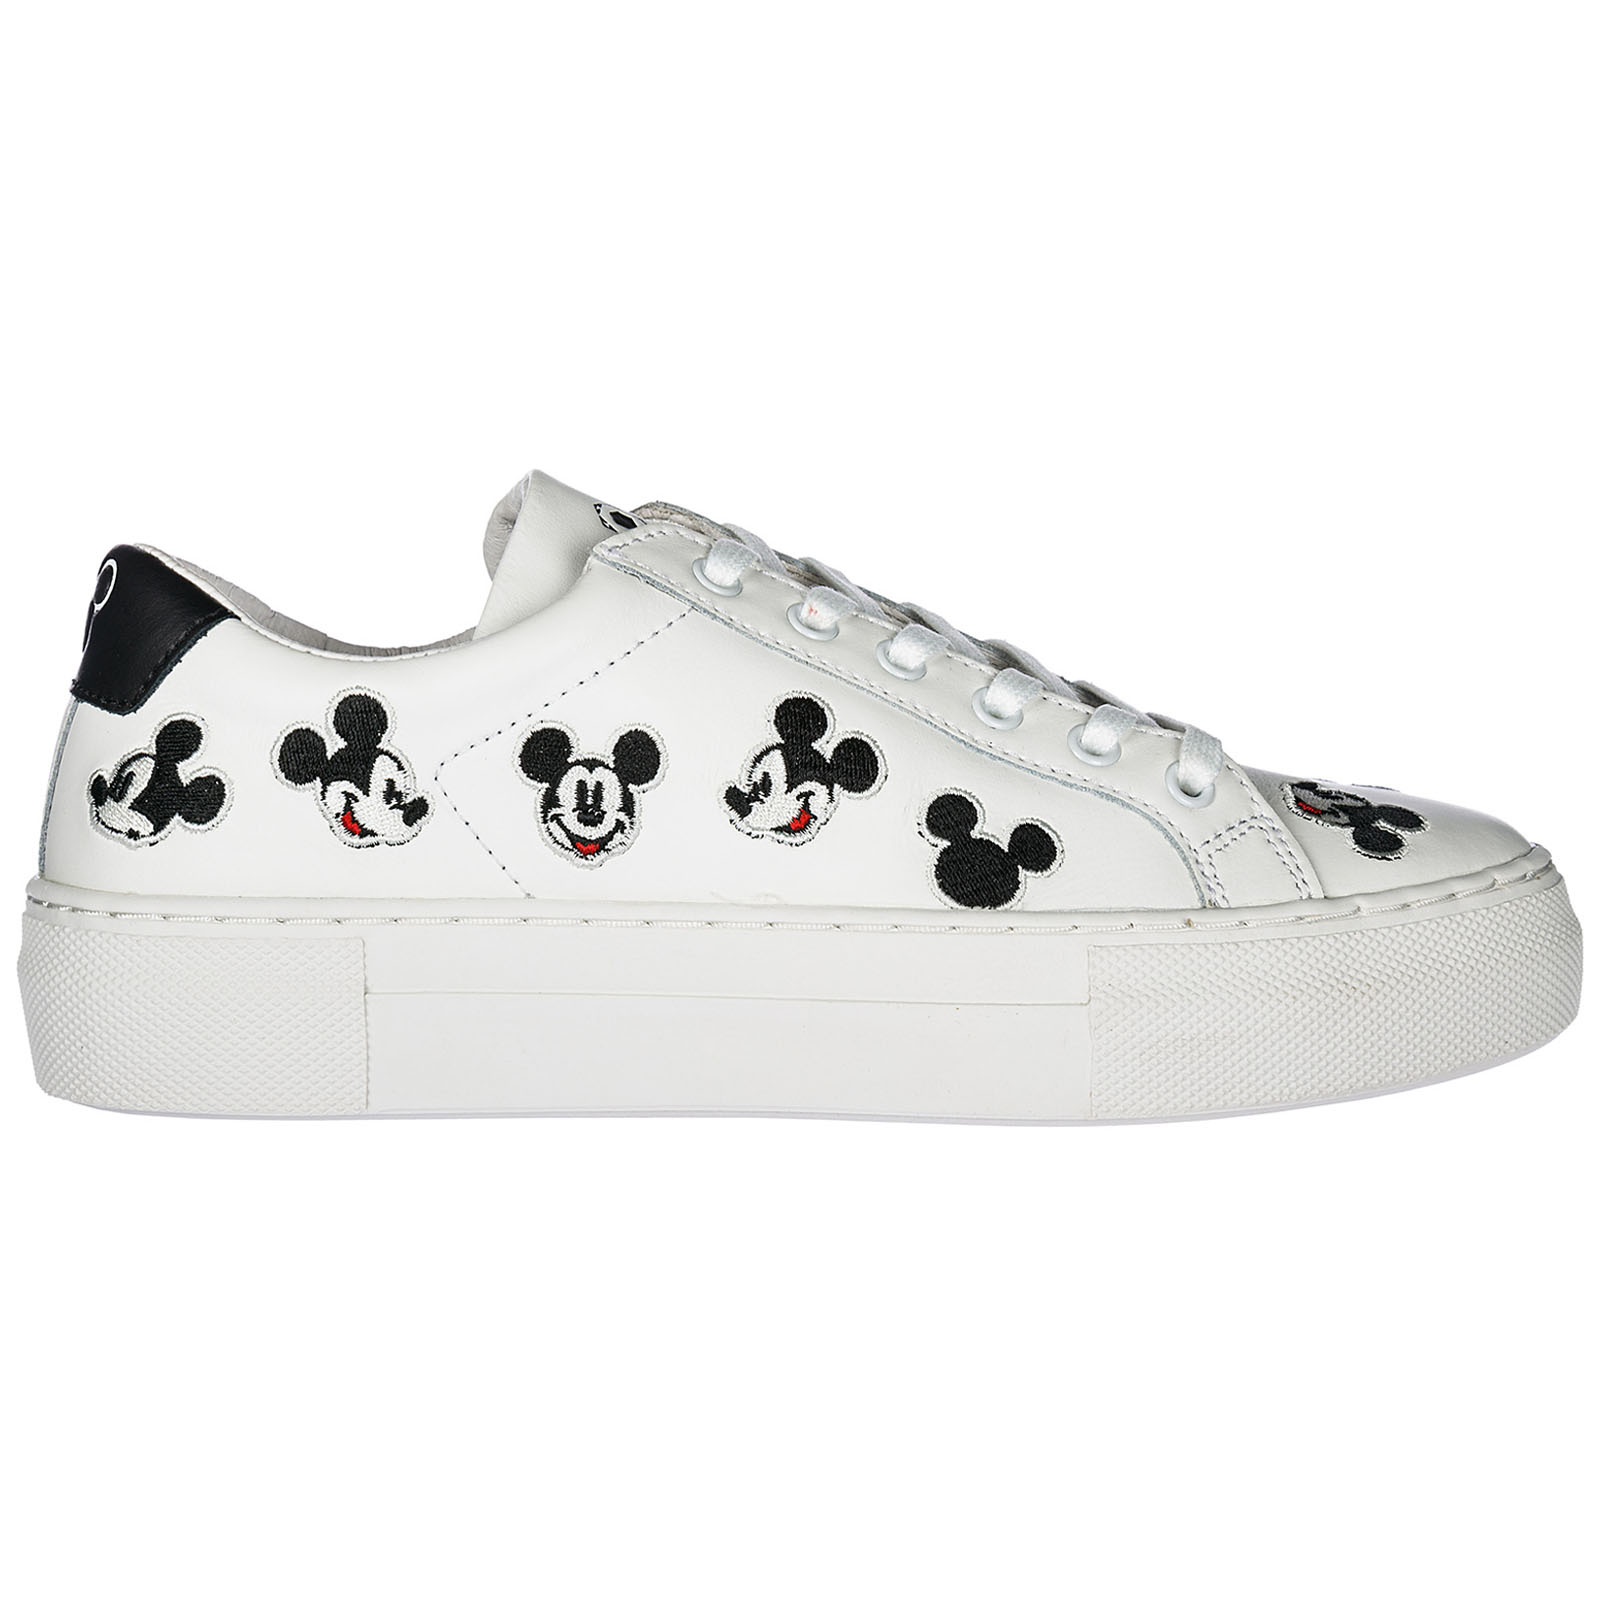 WOMEN'S SHOES LEATHER TRAINERS SNEAKERS MICKEY VICTORIA